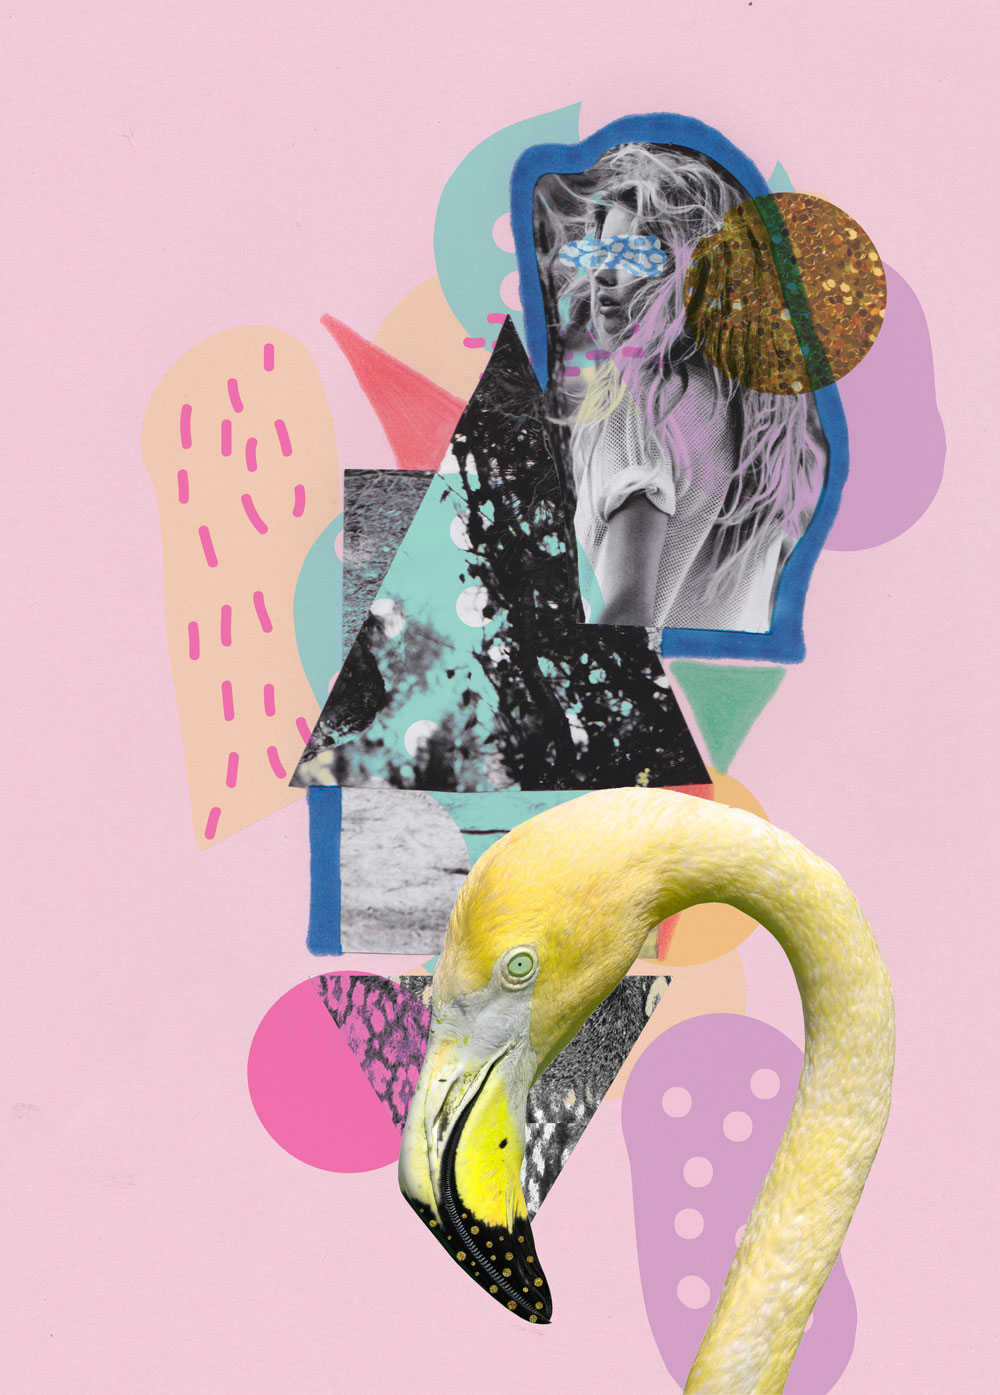 FLAMINGO-LAND-ART-PRINT-COLLAGE-MIXED-media-design-vasarenar-TROpical-artist-shutterstock-design-creative-cool-appareal-topshop-urban-outfitters-kitch-hipster-pink-pastel-tumblr-